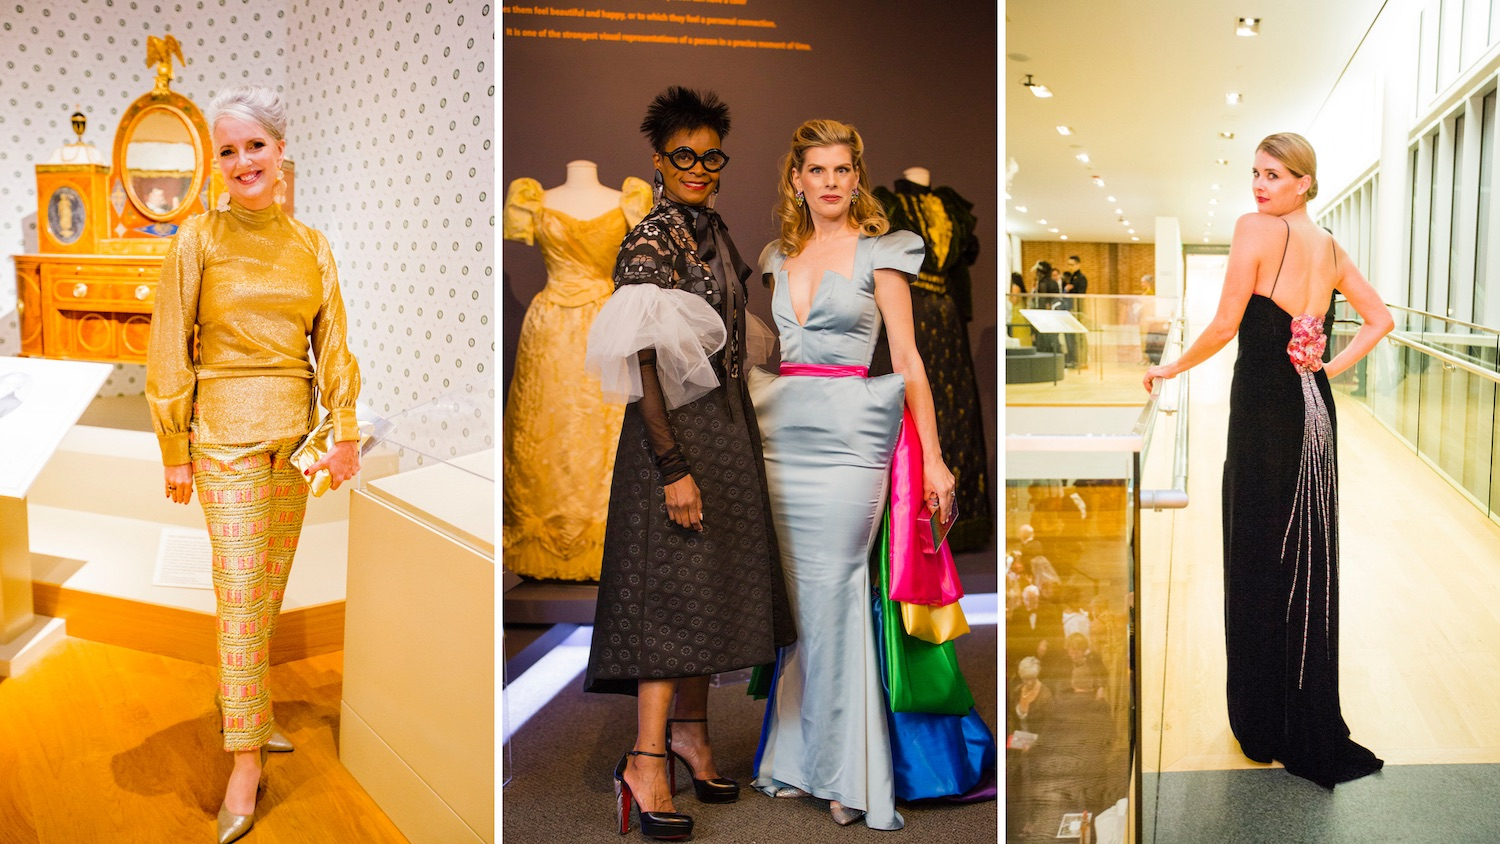 What They Re Wearing Spectrum Of Fashion Gala At The Maryland Historical Society Bmoreart